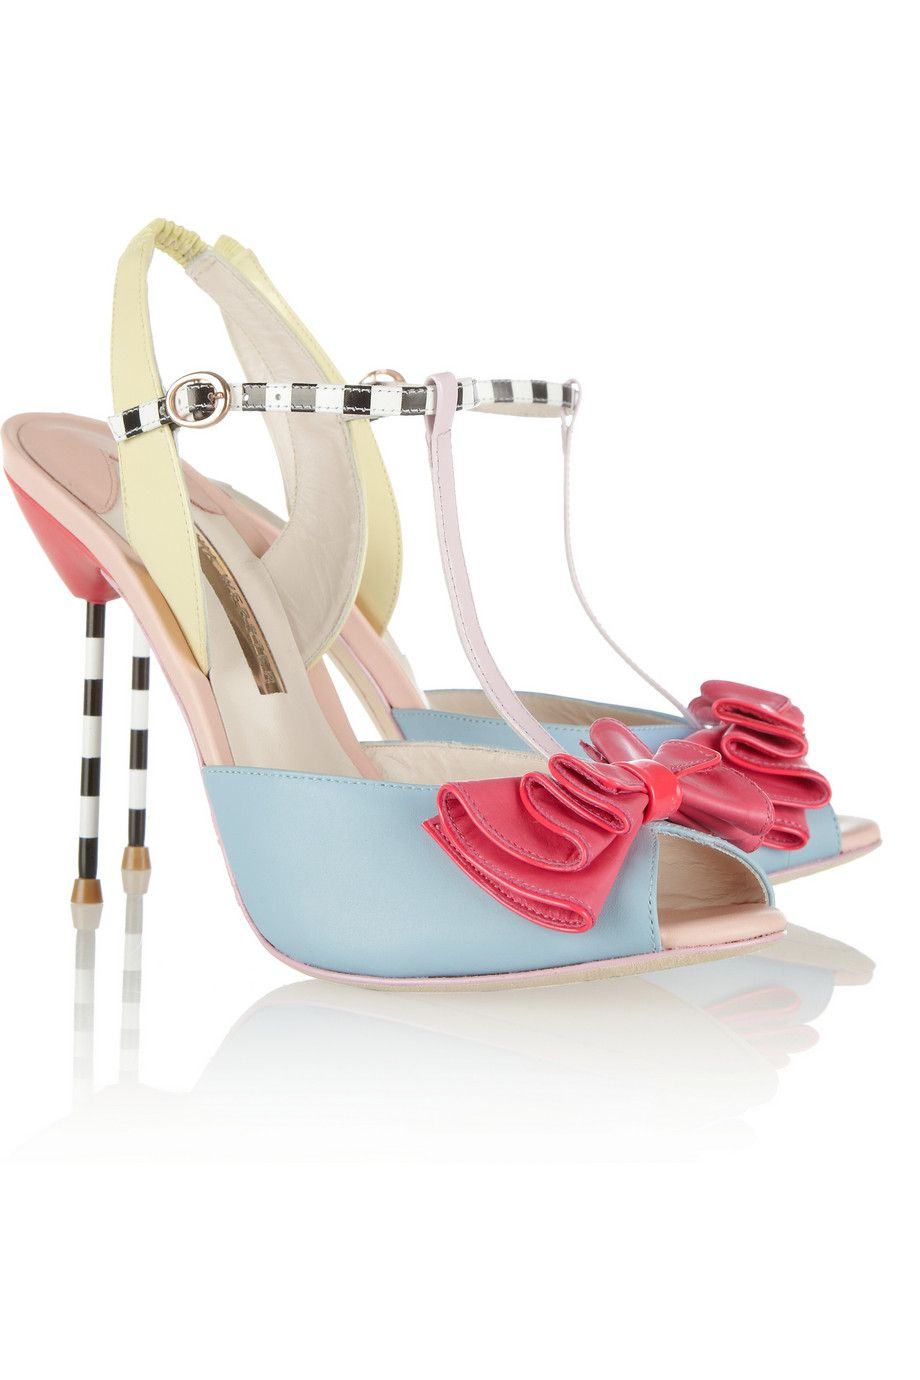 Sophia Webster   Vivi patent-trimmed leather sandals   50% off at net-a-porter! I would do unspeakable things for these!!!